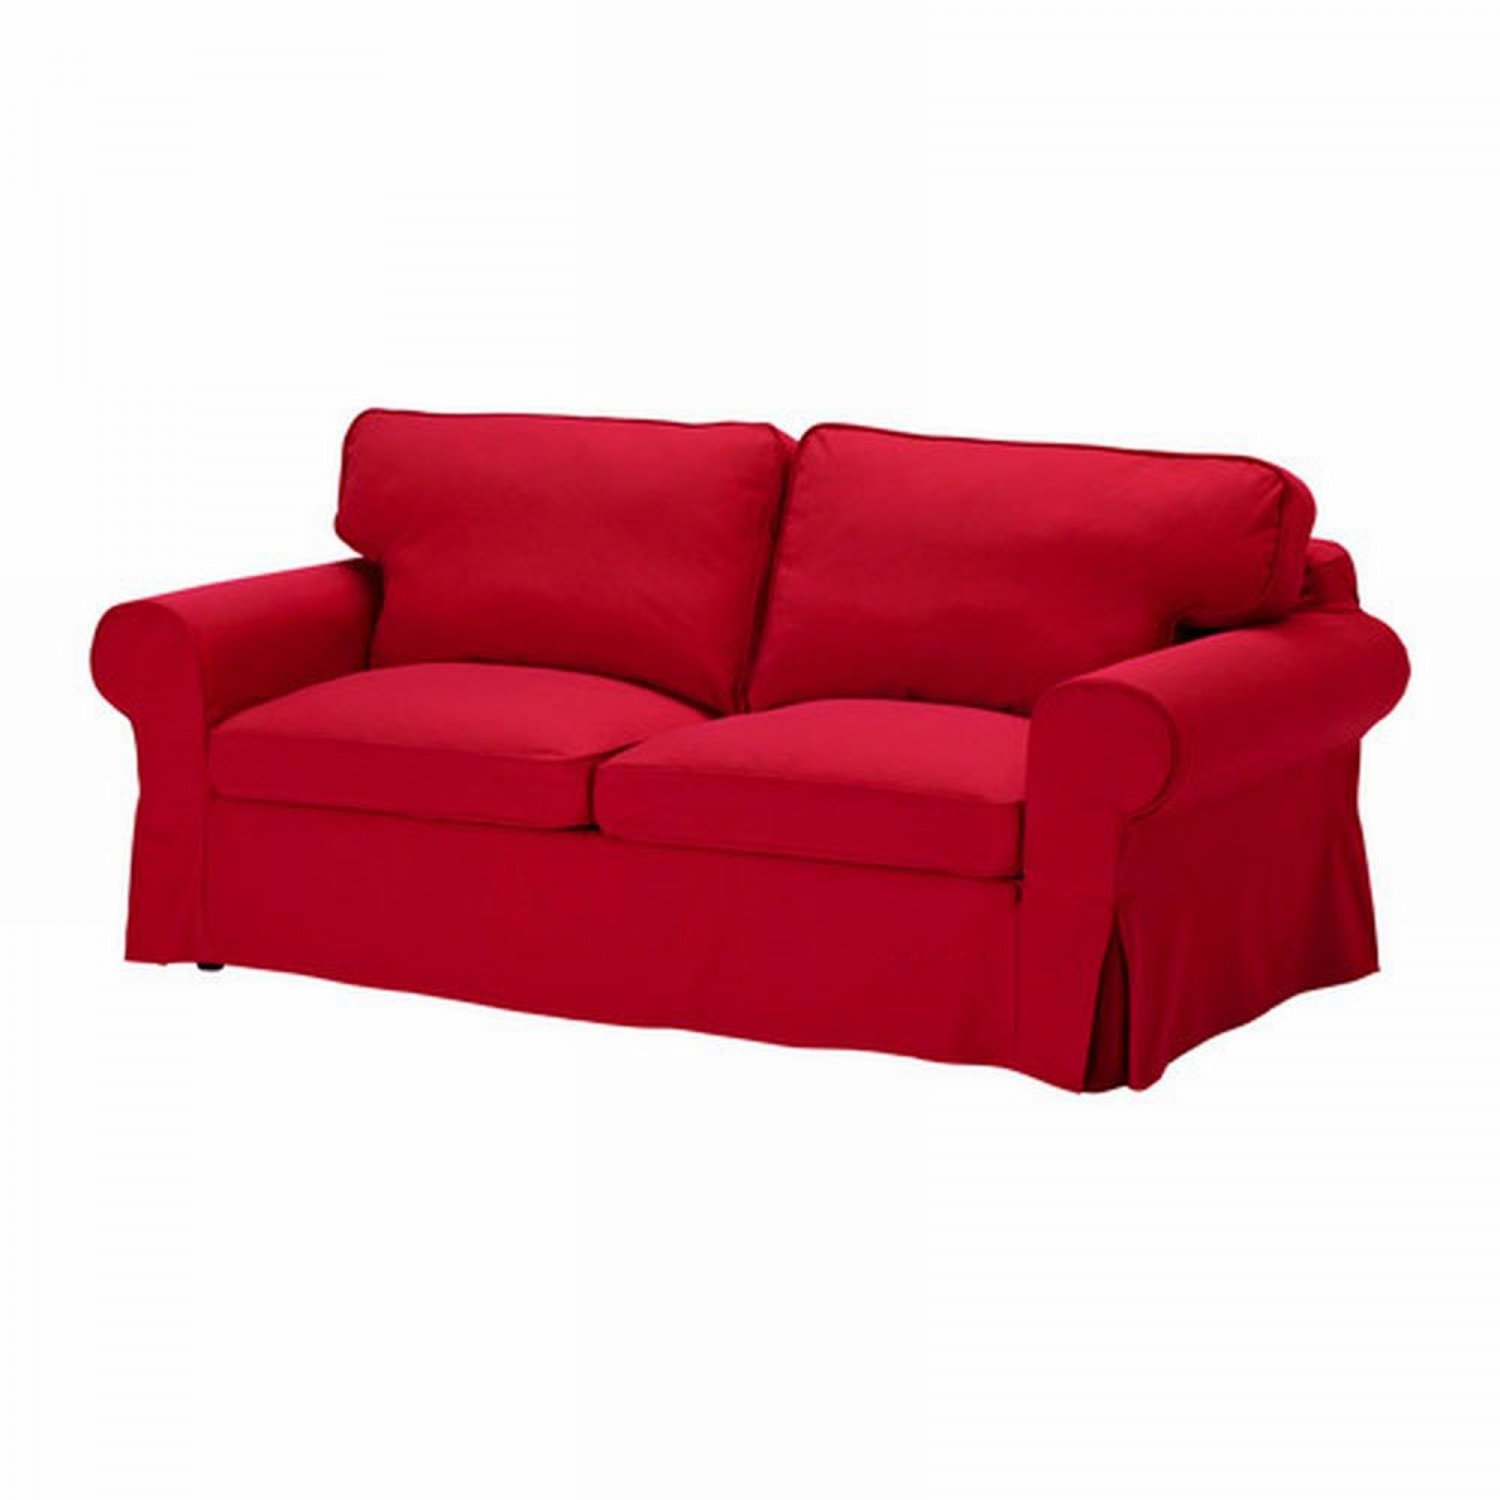 Ikea ektorp sofa bed slipcover cover idemo red sofabed cvr Loveseat futon cover